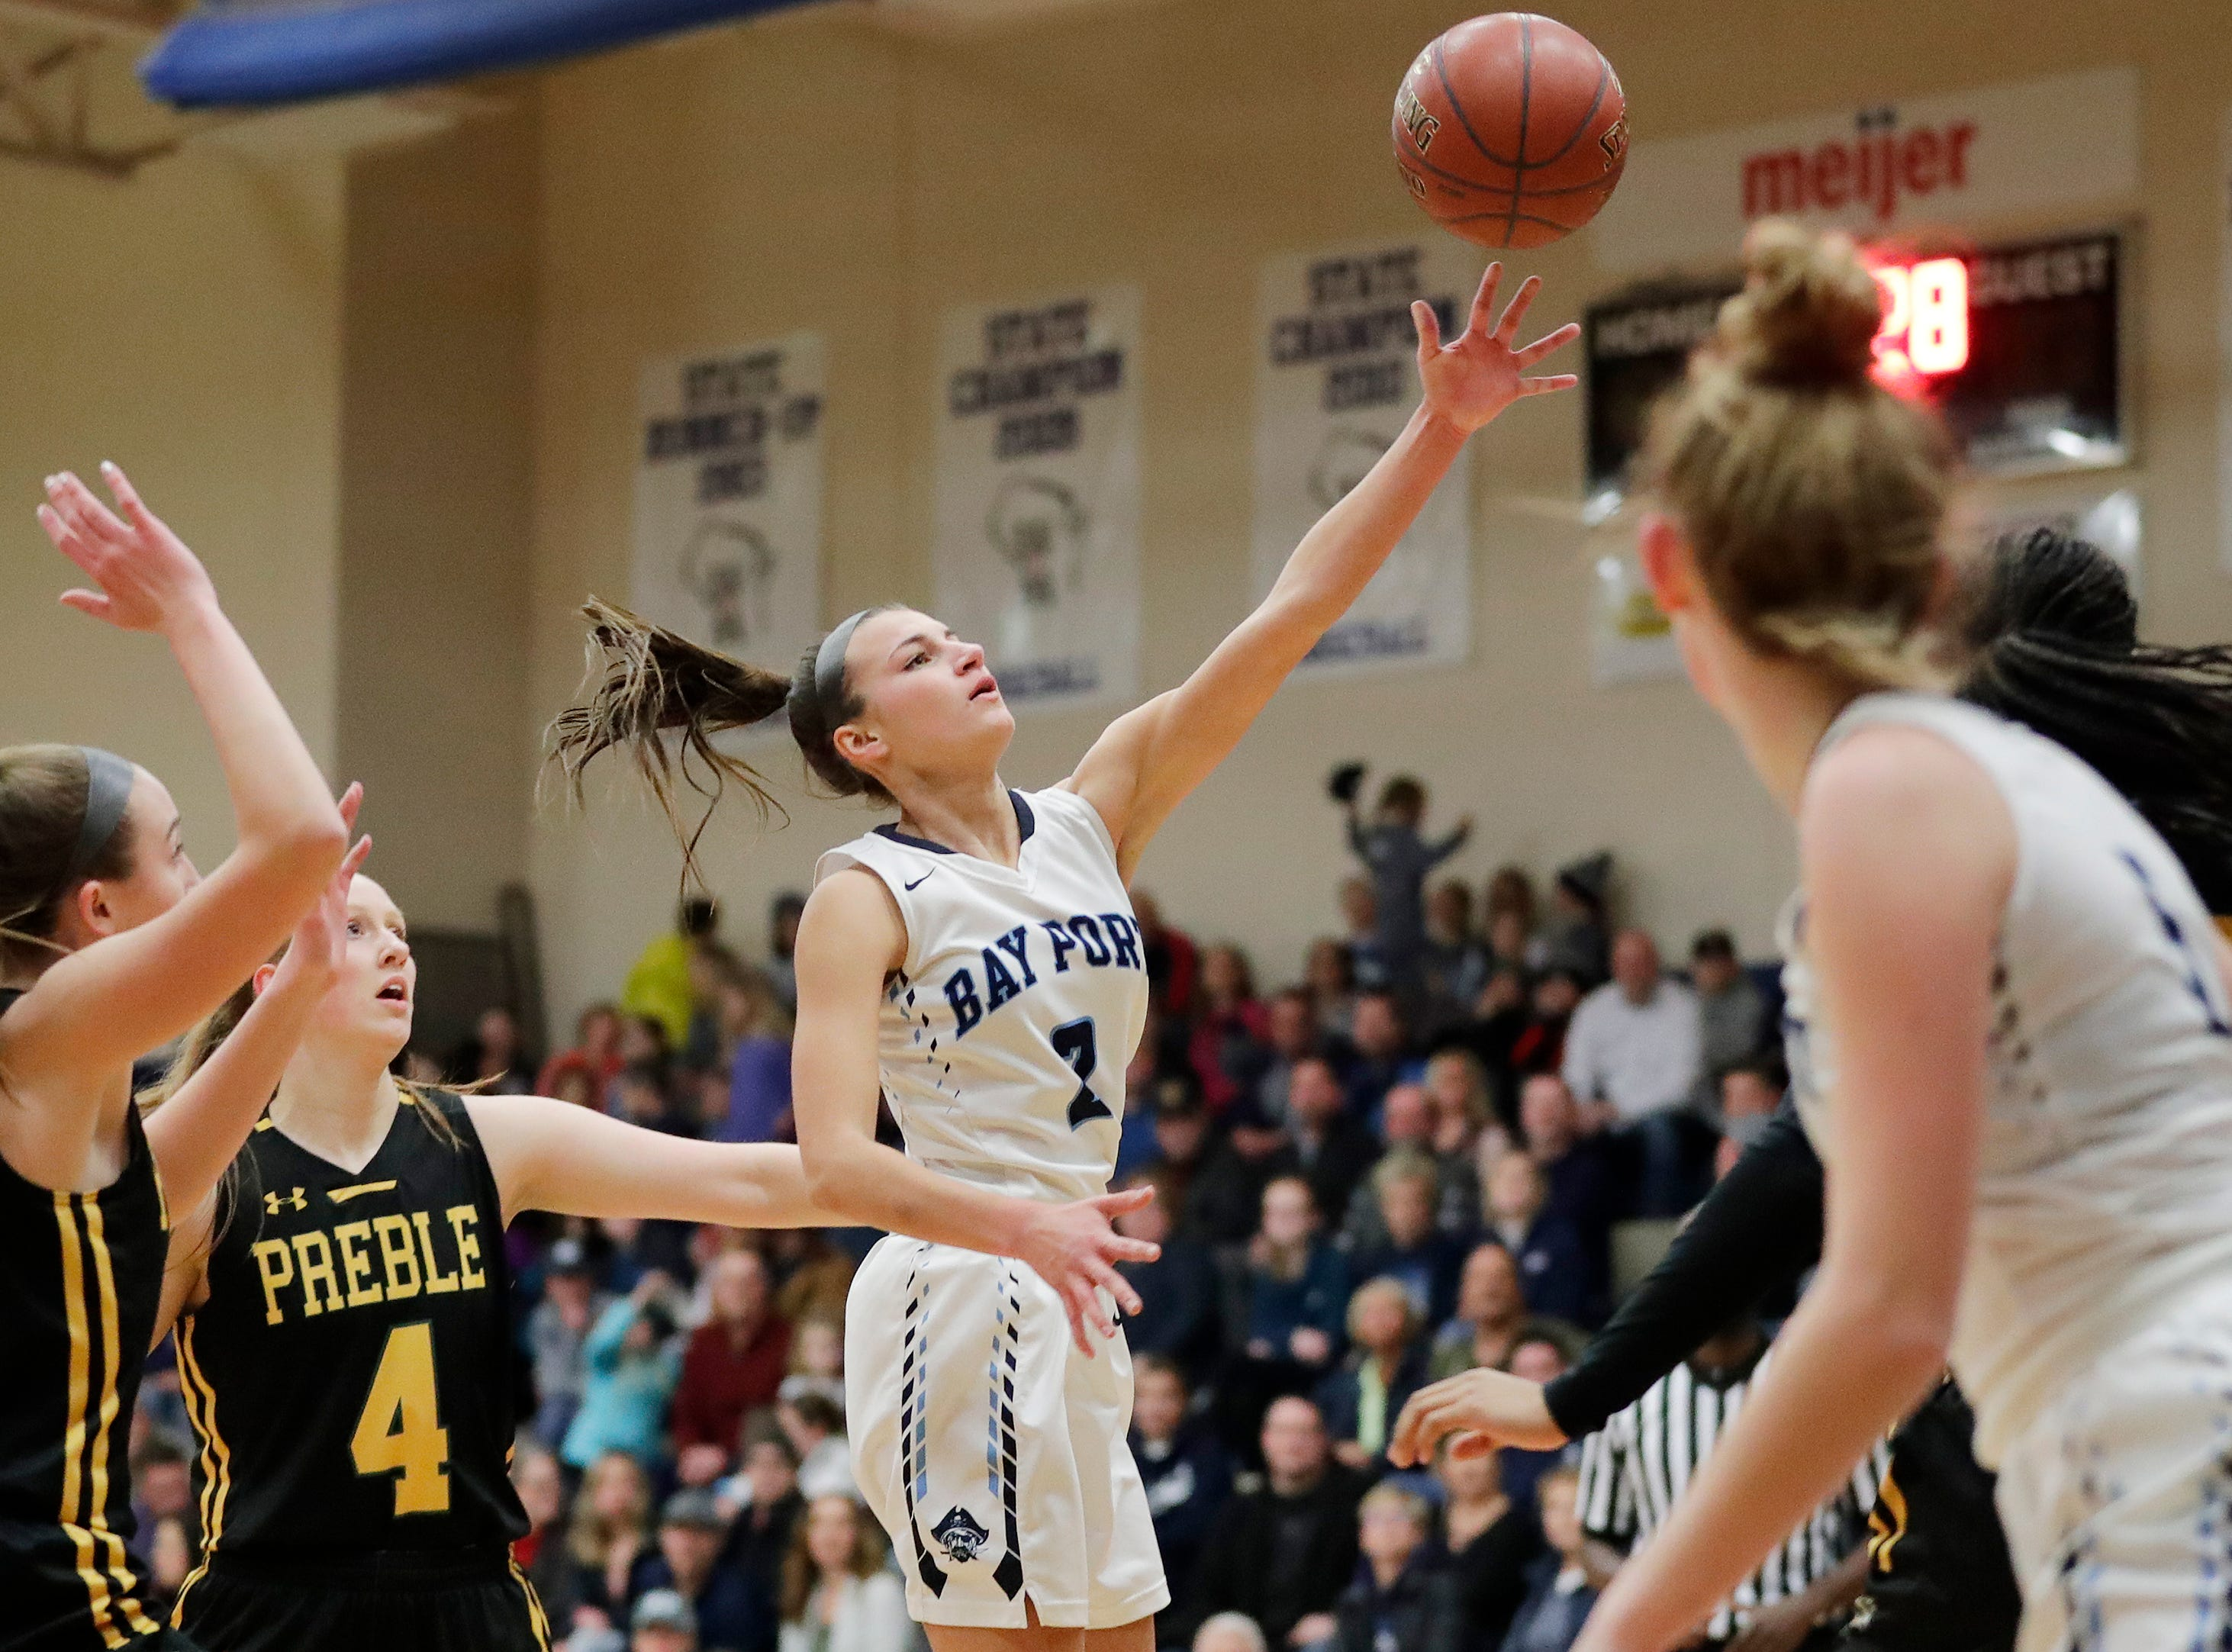 Bay Port's Grace Krause (2) shoots against Green Bay Preble in a FRCC girls basketball game at Bay Port high school on Friday, February 8, 2019 in Suamico, Wis.